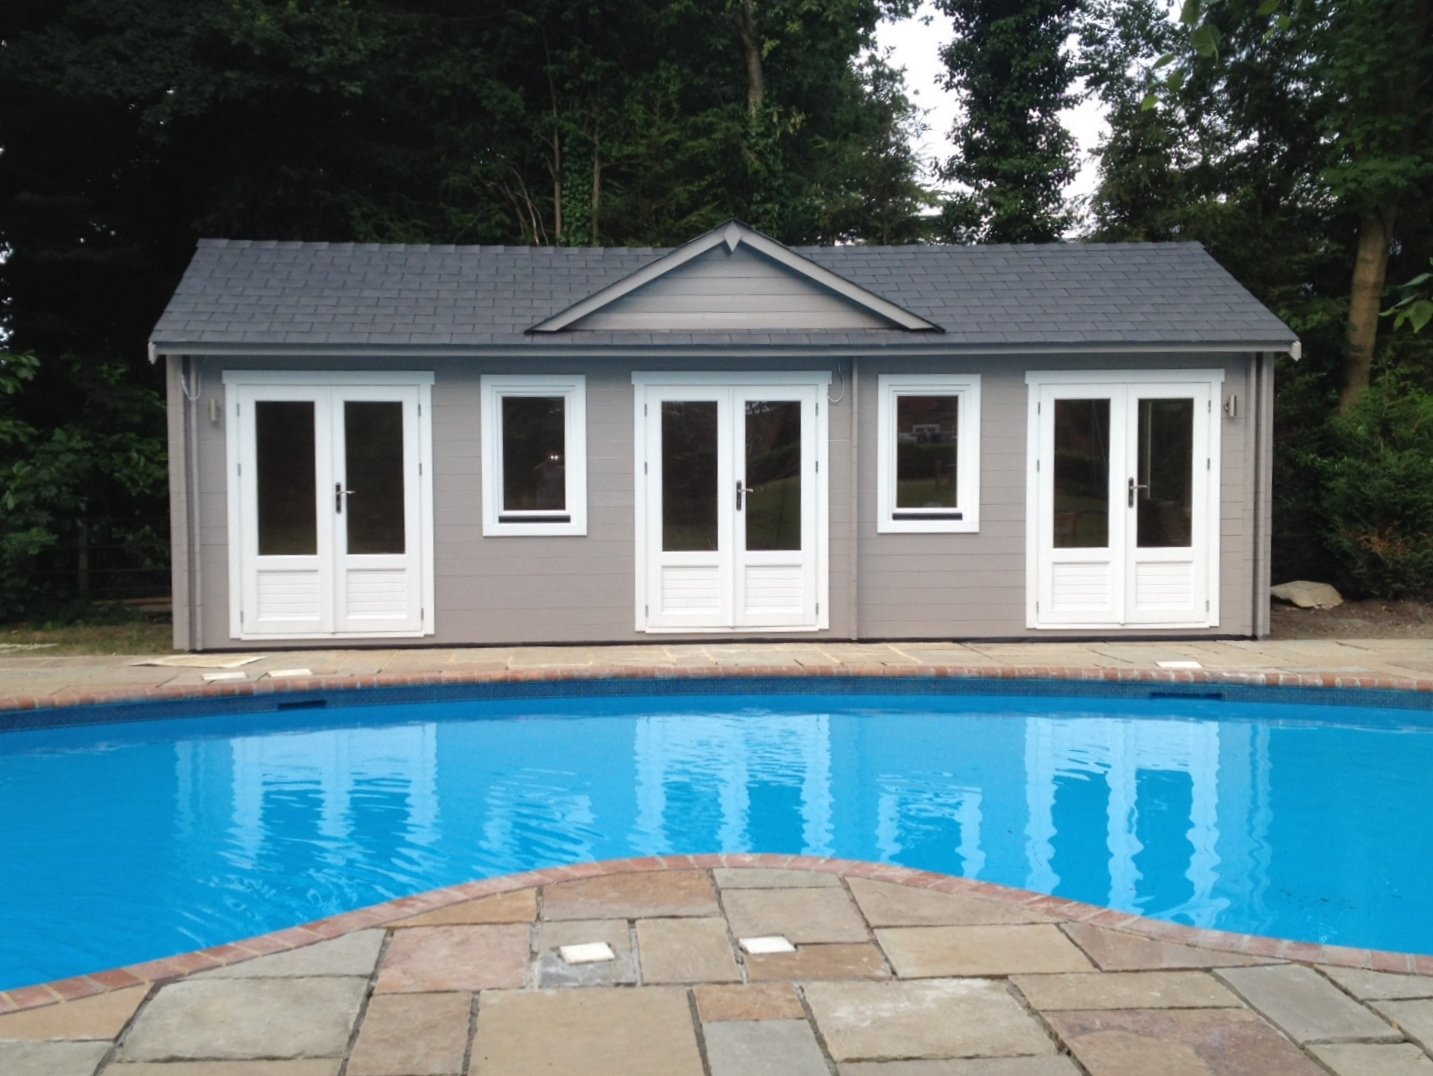 Norfolk Cabin' adapted to accommodate a pool house with a separate changing room